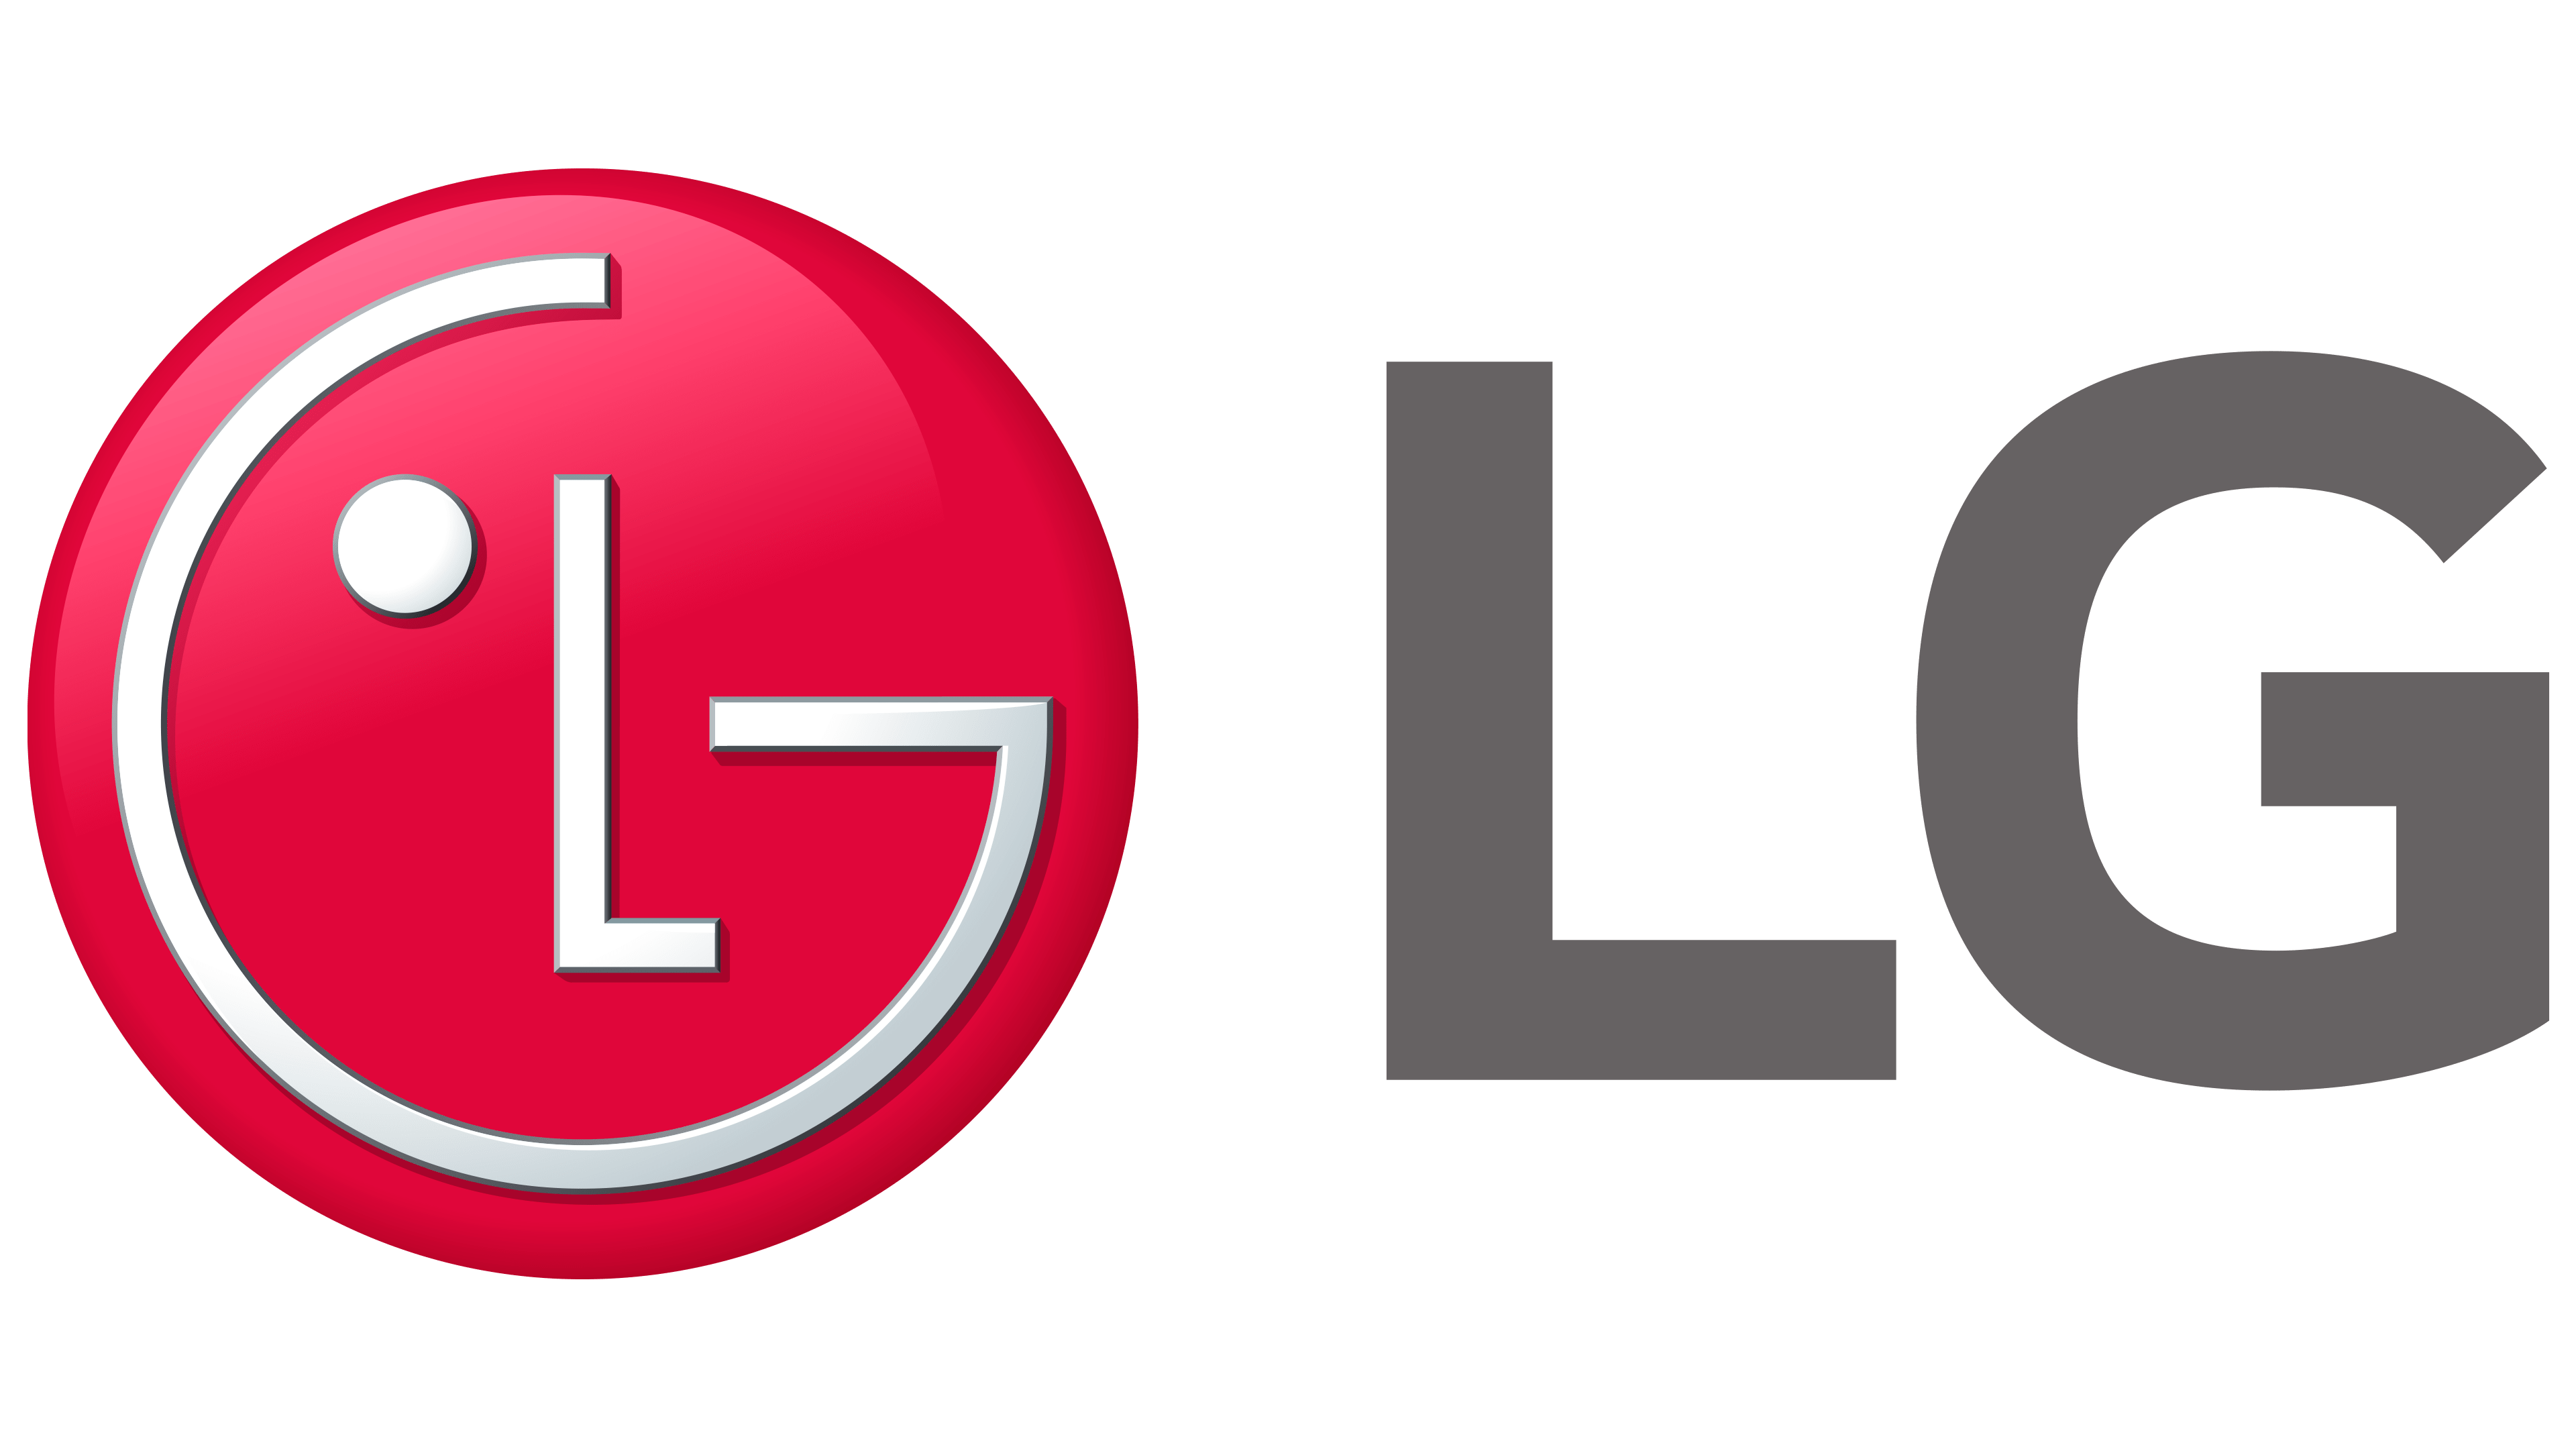 LG Logo   The most famous brands and company logos in the world